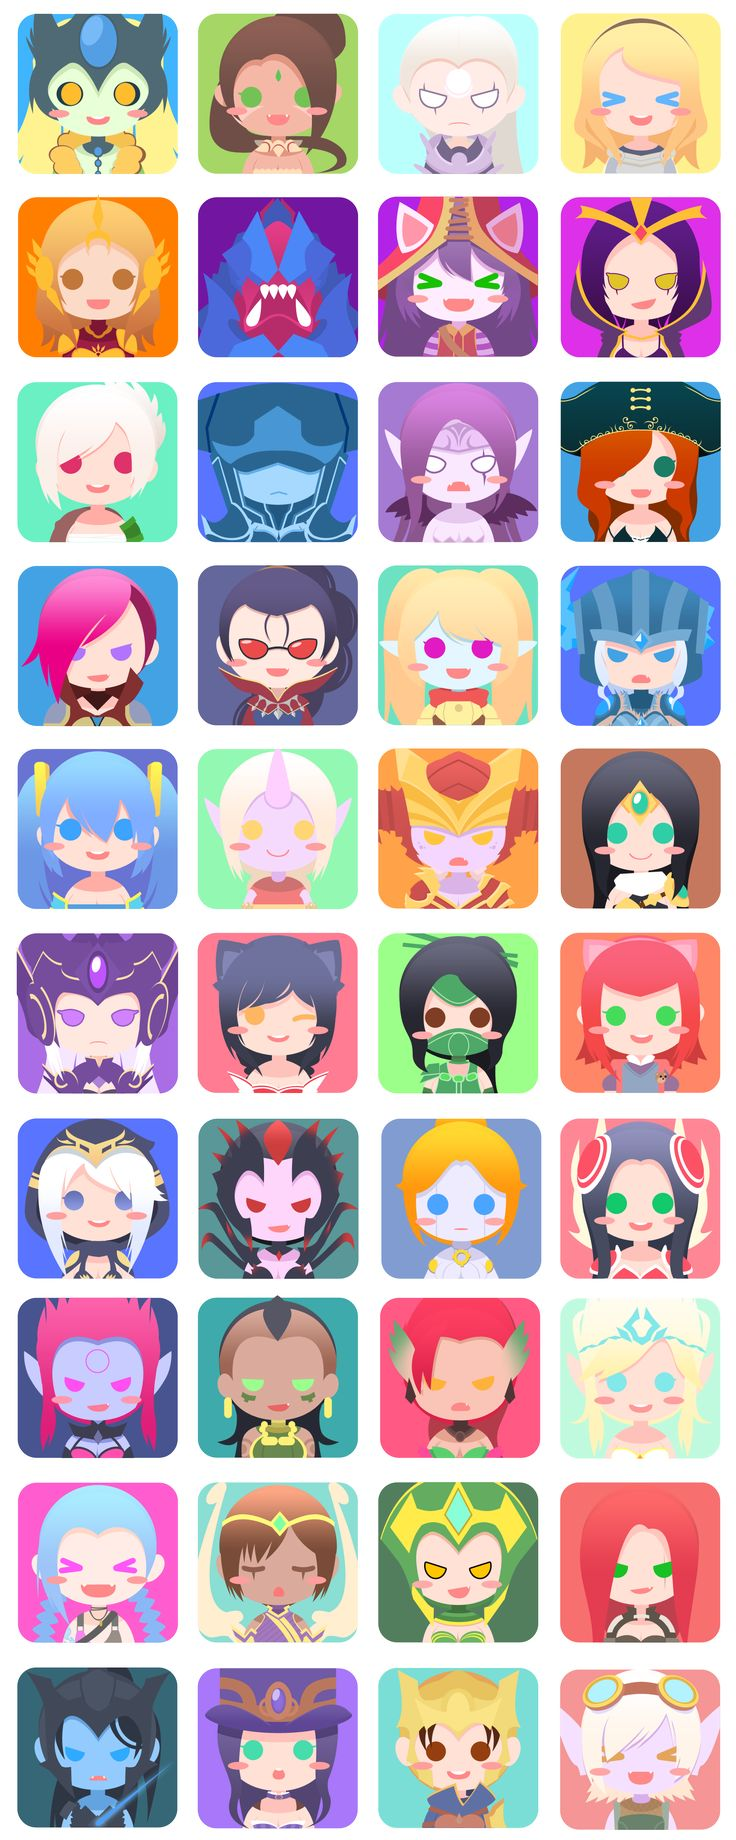 40 Female League Champ icons! - Imgur